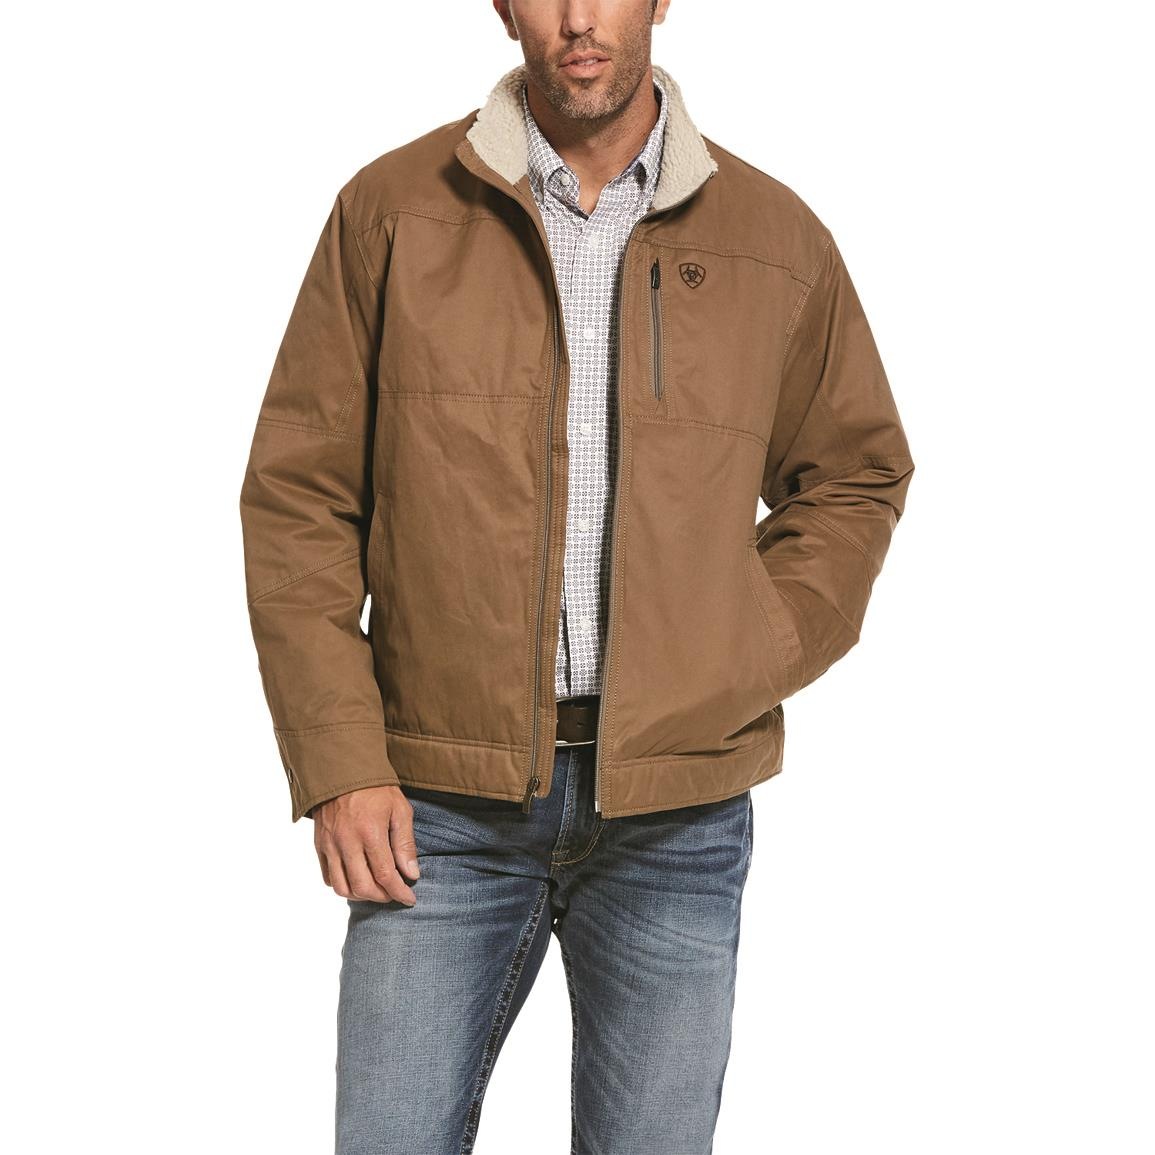 Ariat Men's Grizzly Canvas Jacket, Cub